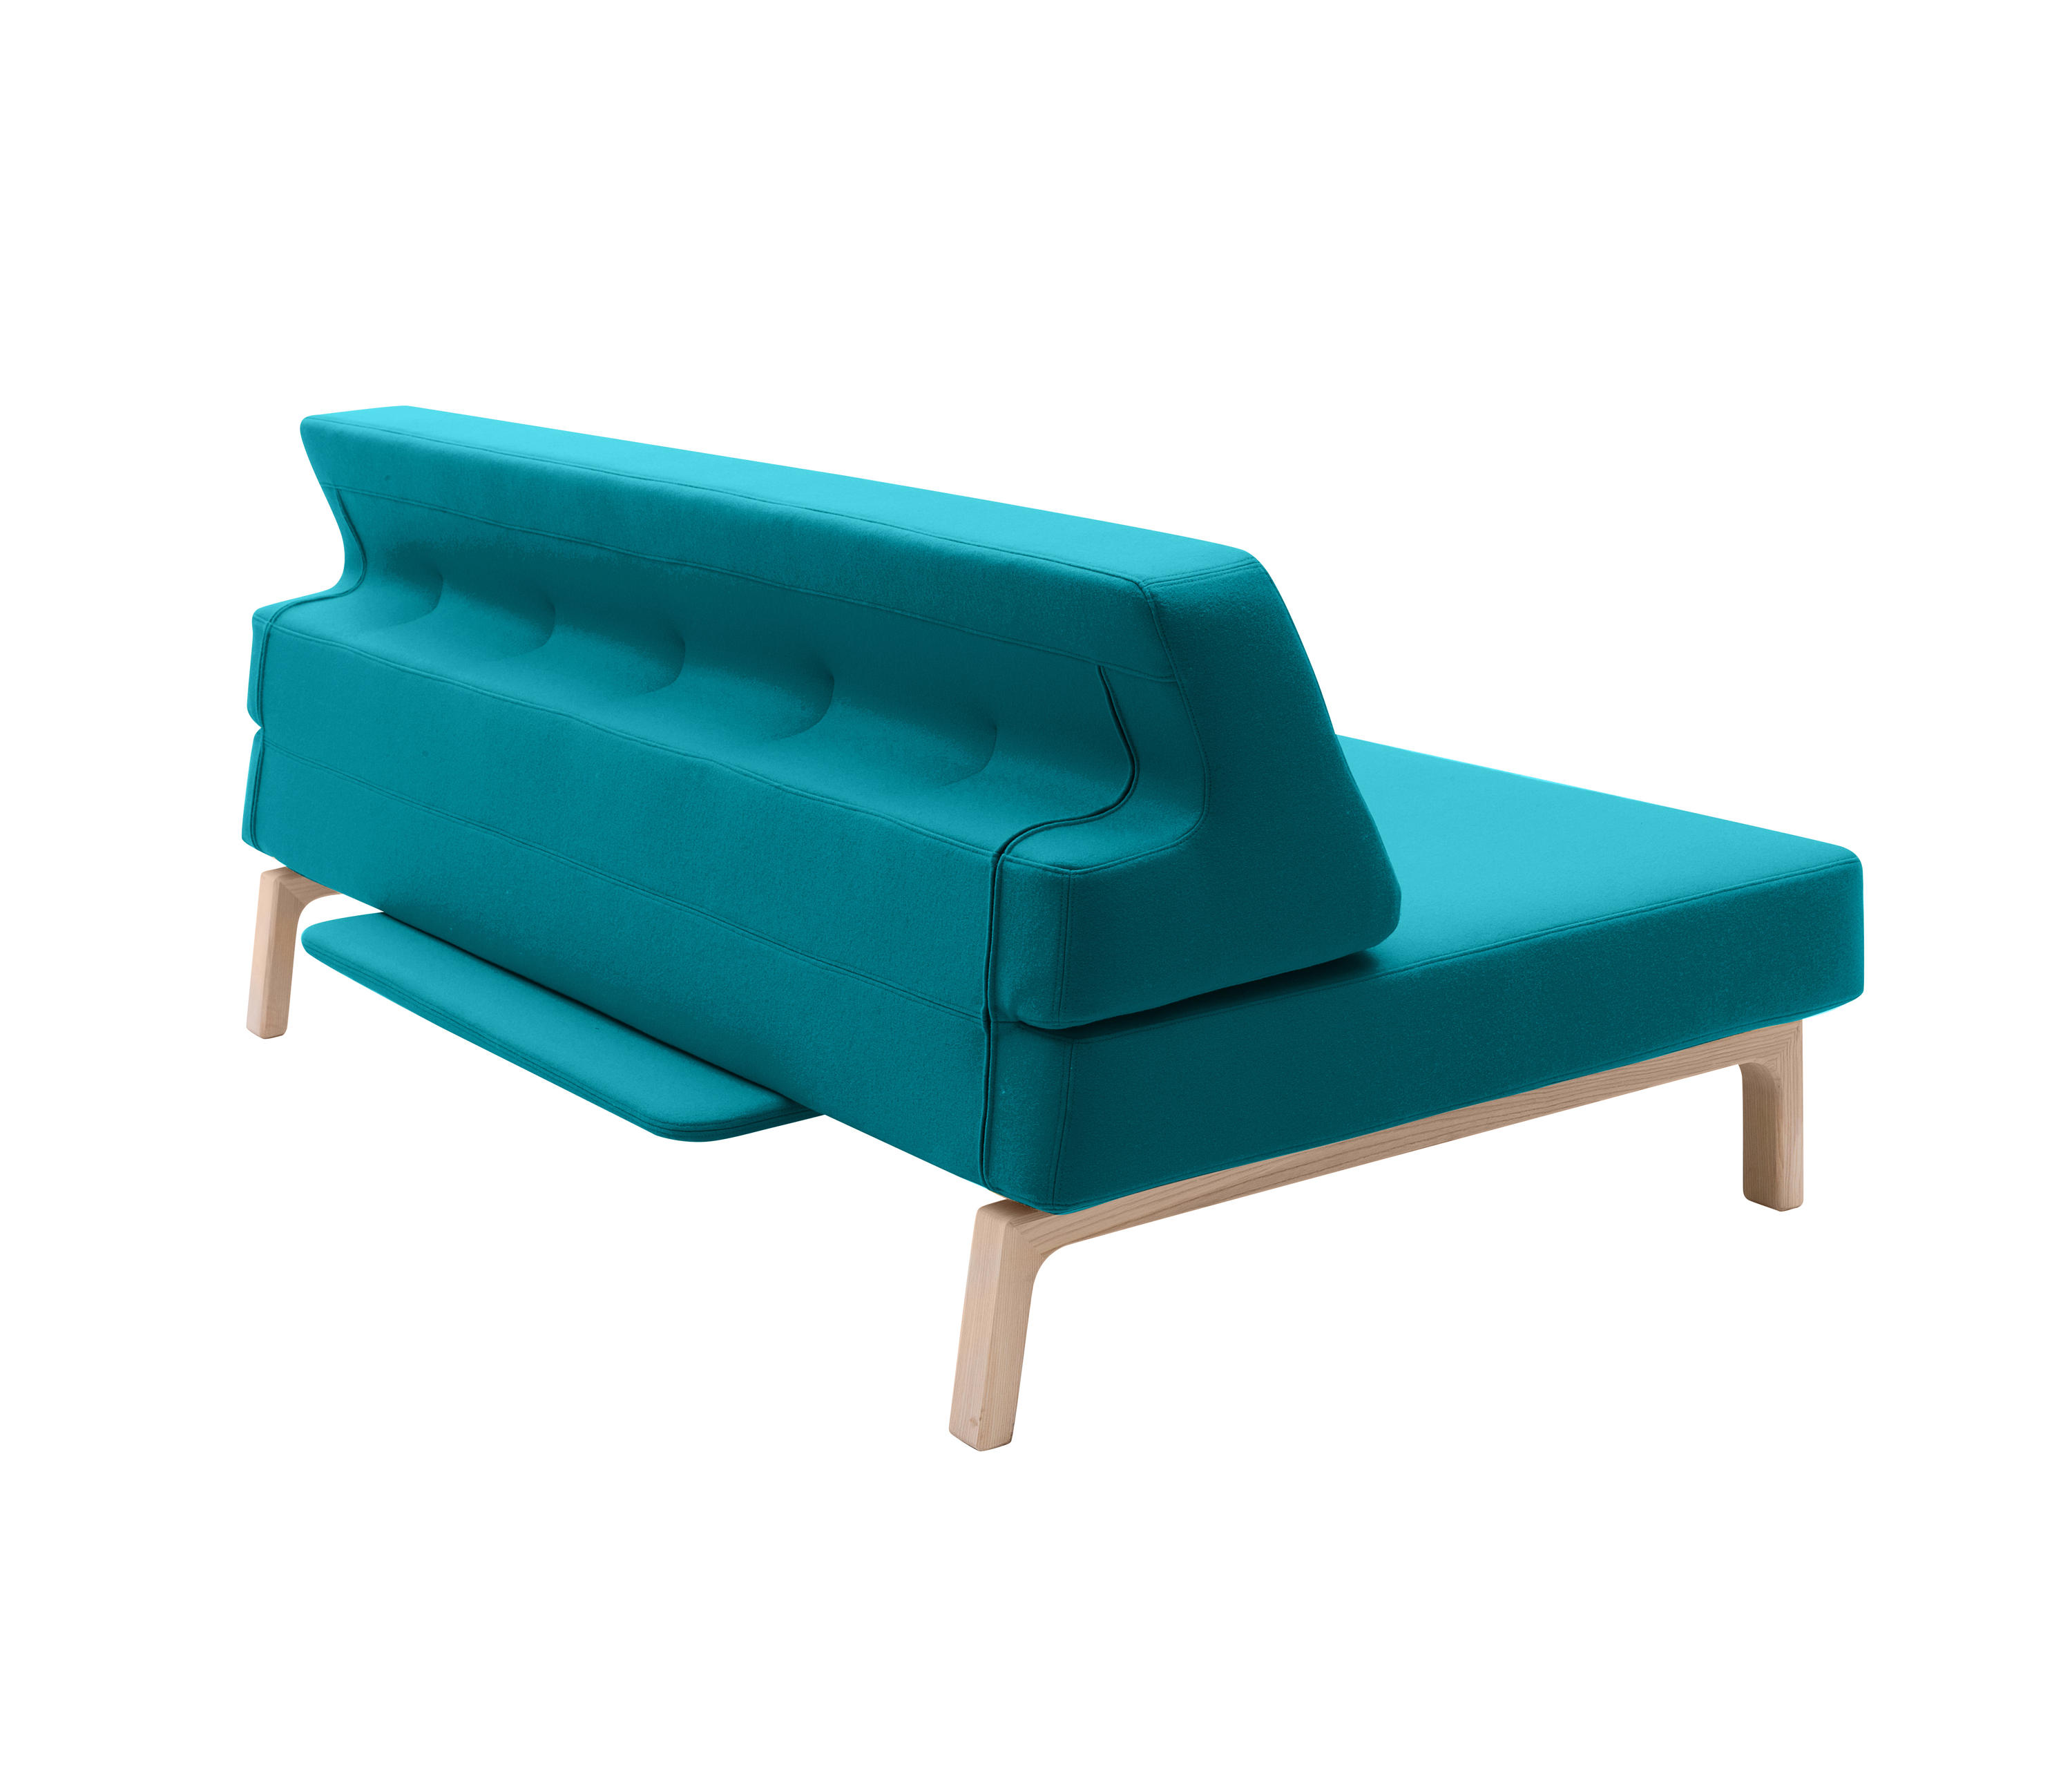 LAZY Sofa beds from Softline A S